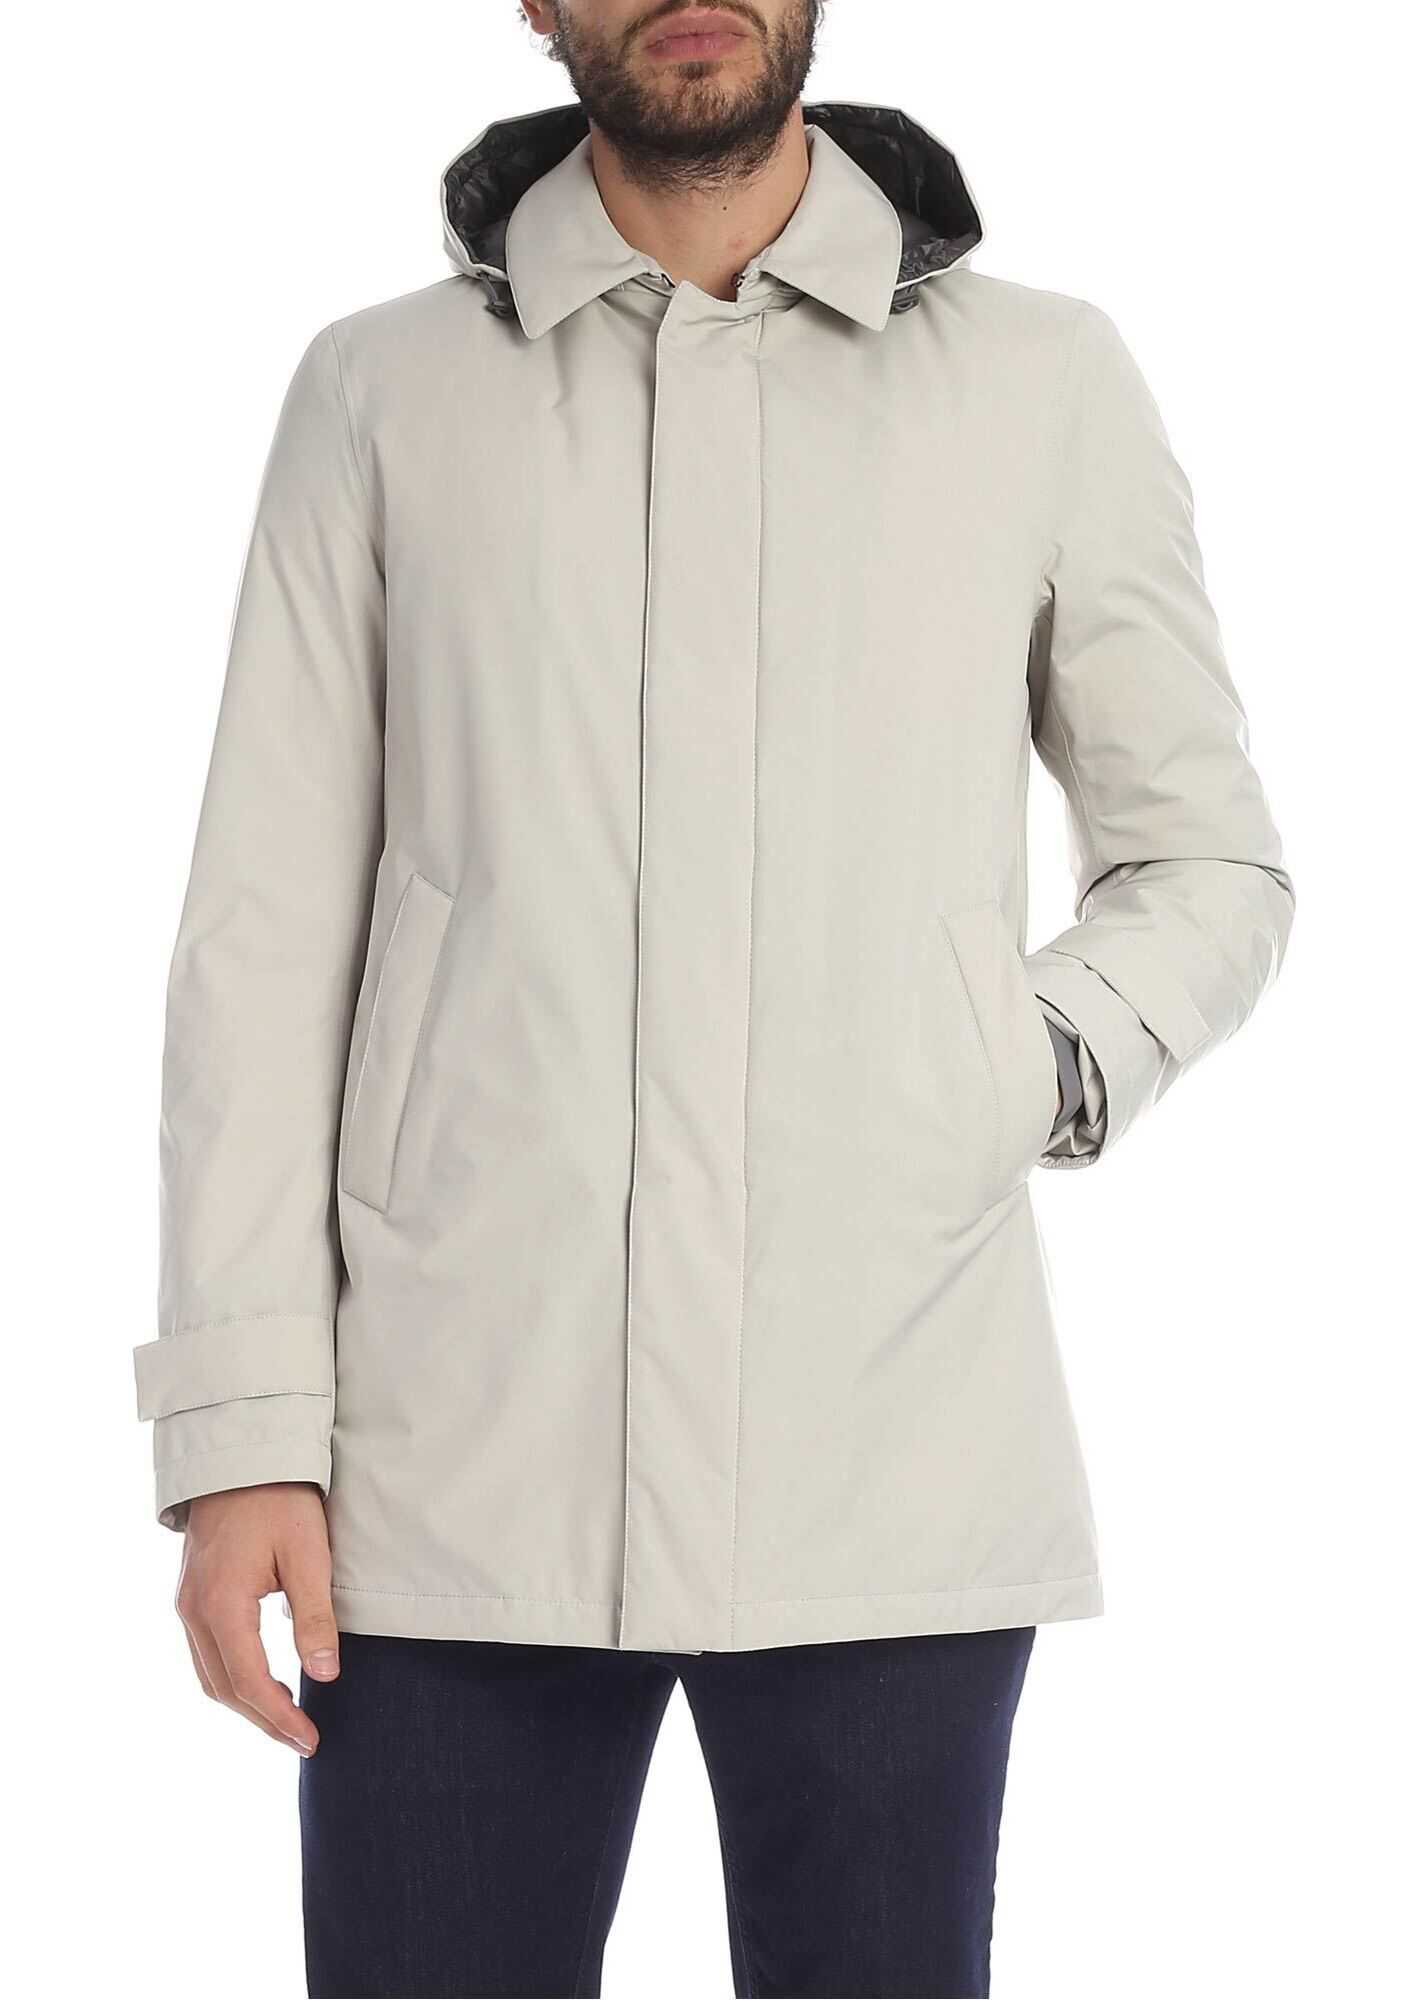 Herno Hooded Down Jacket In Ice Colored White imagine